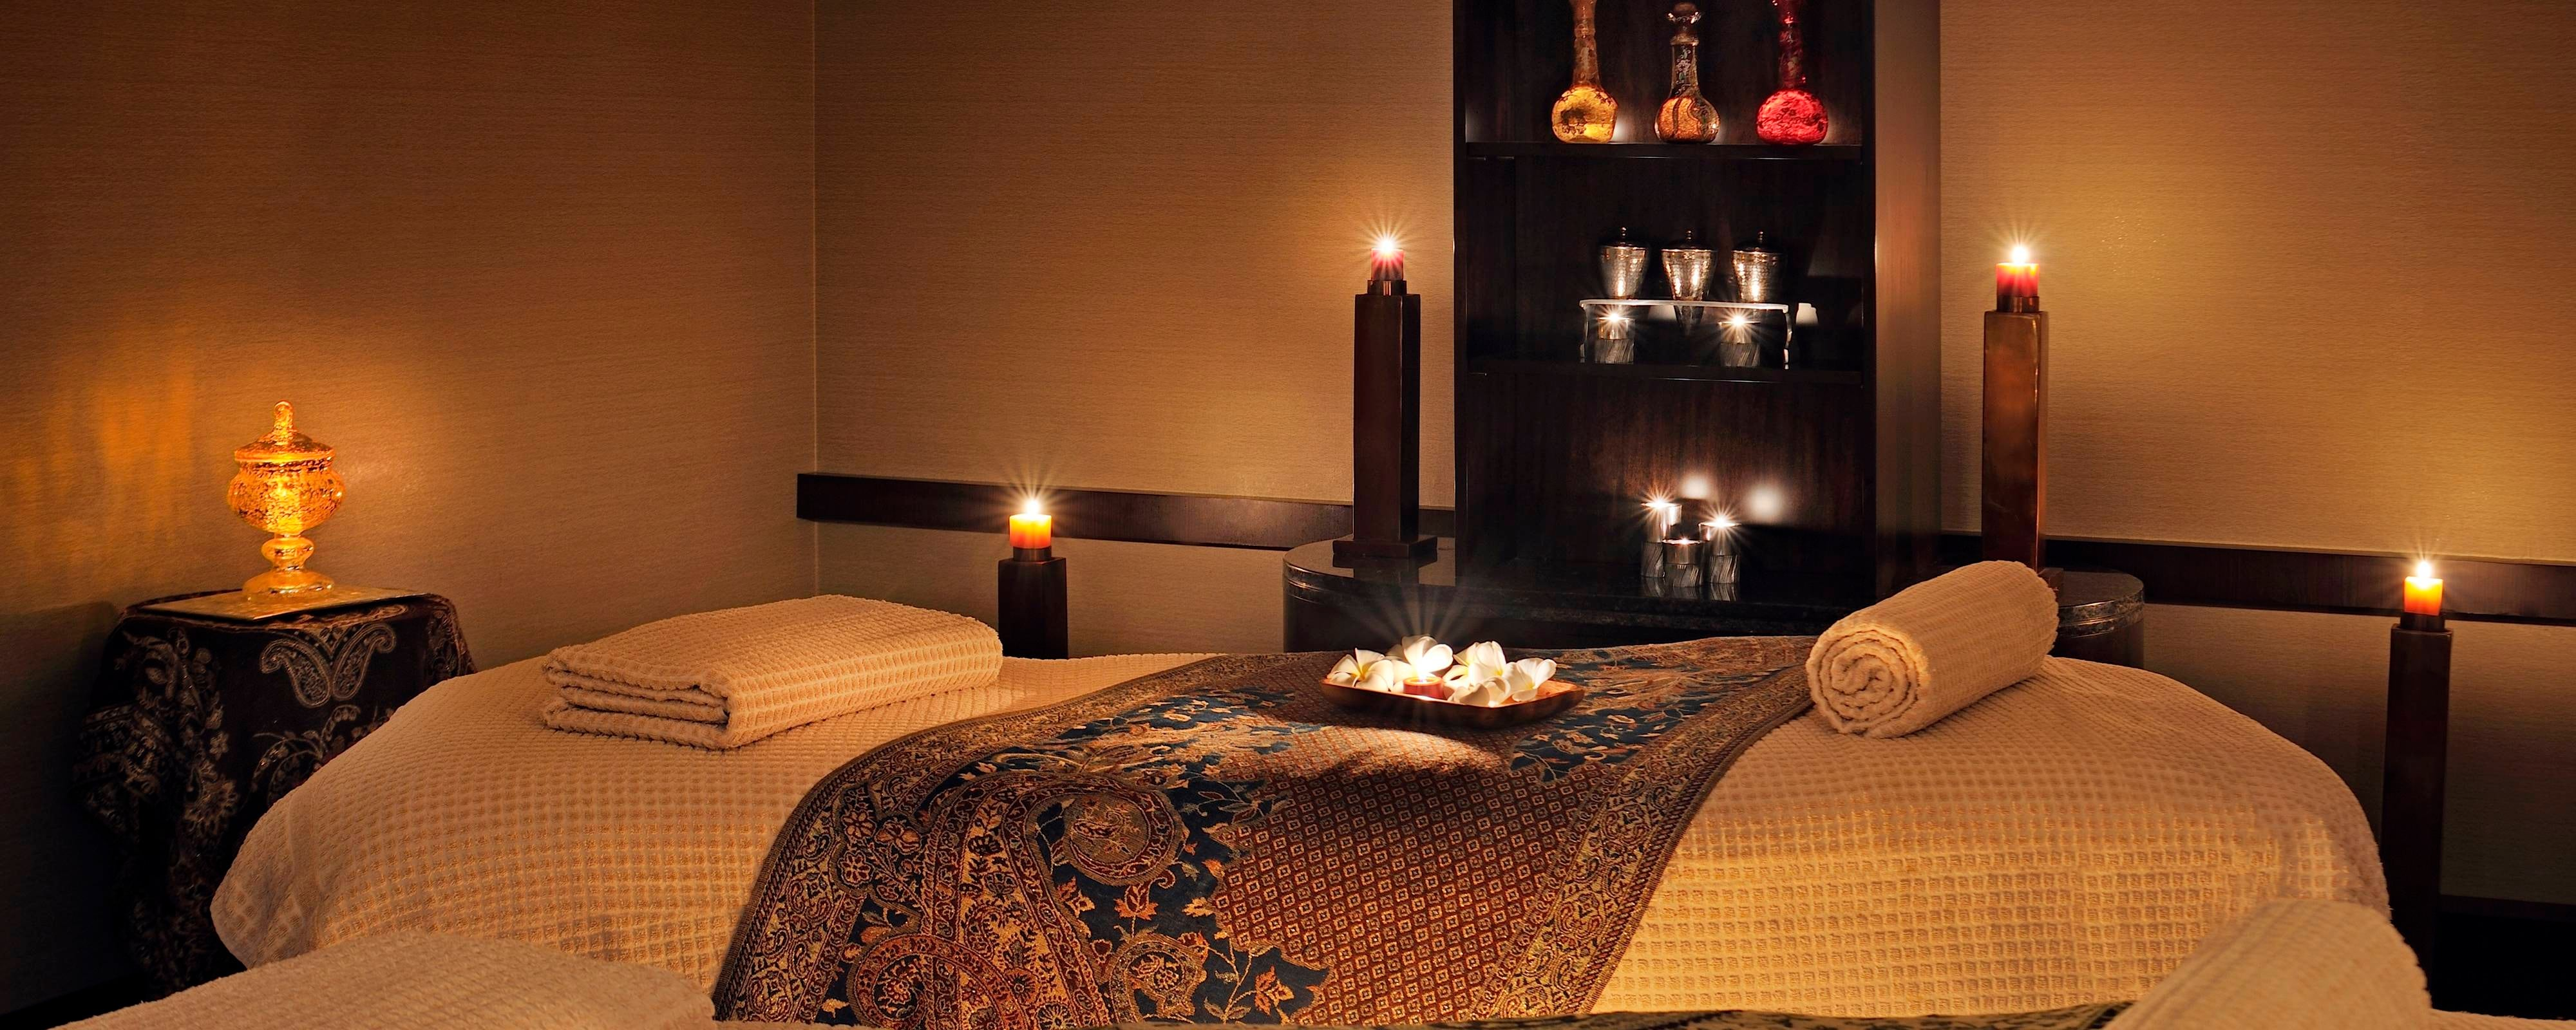 Hotel spa in downtown Doha